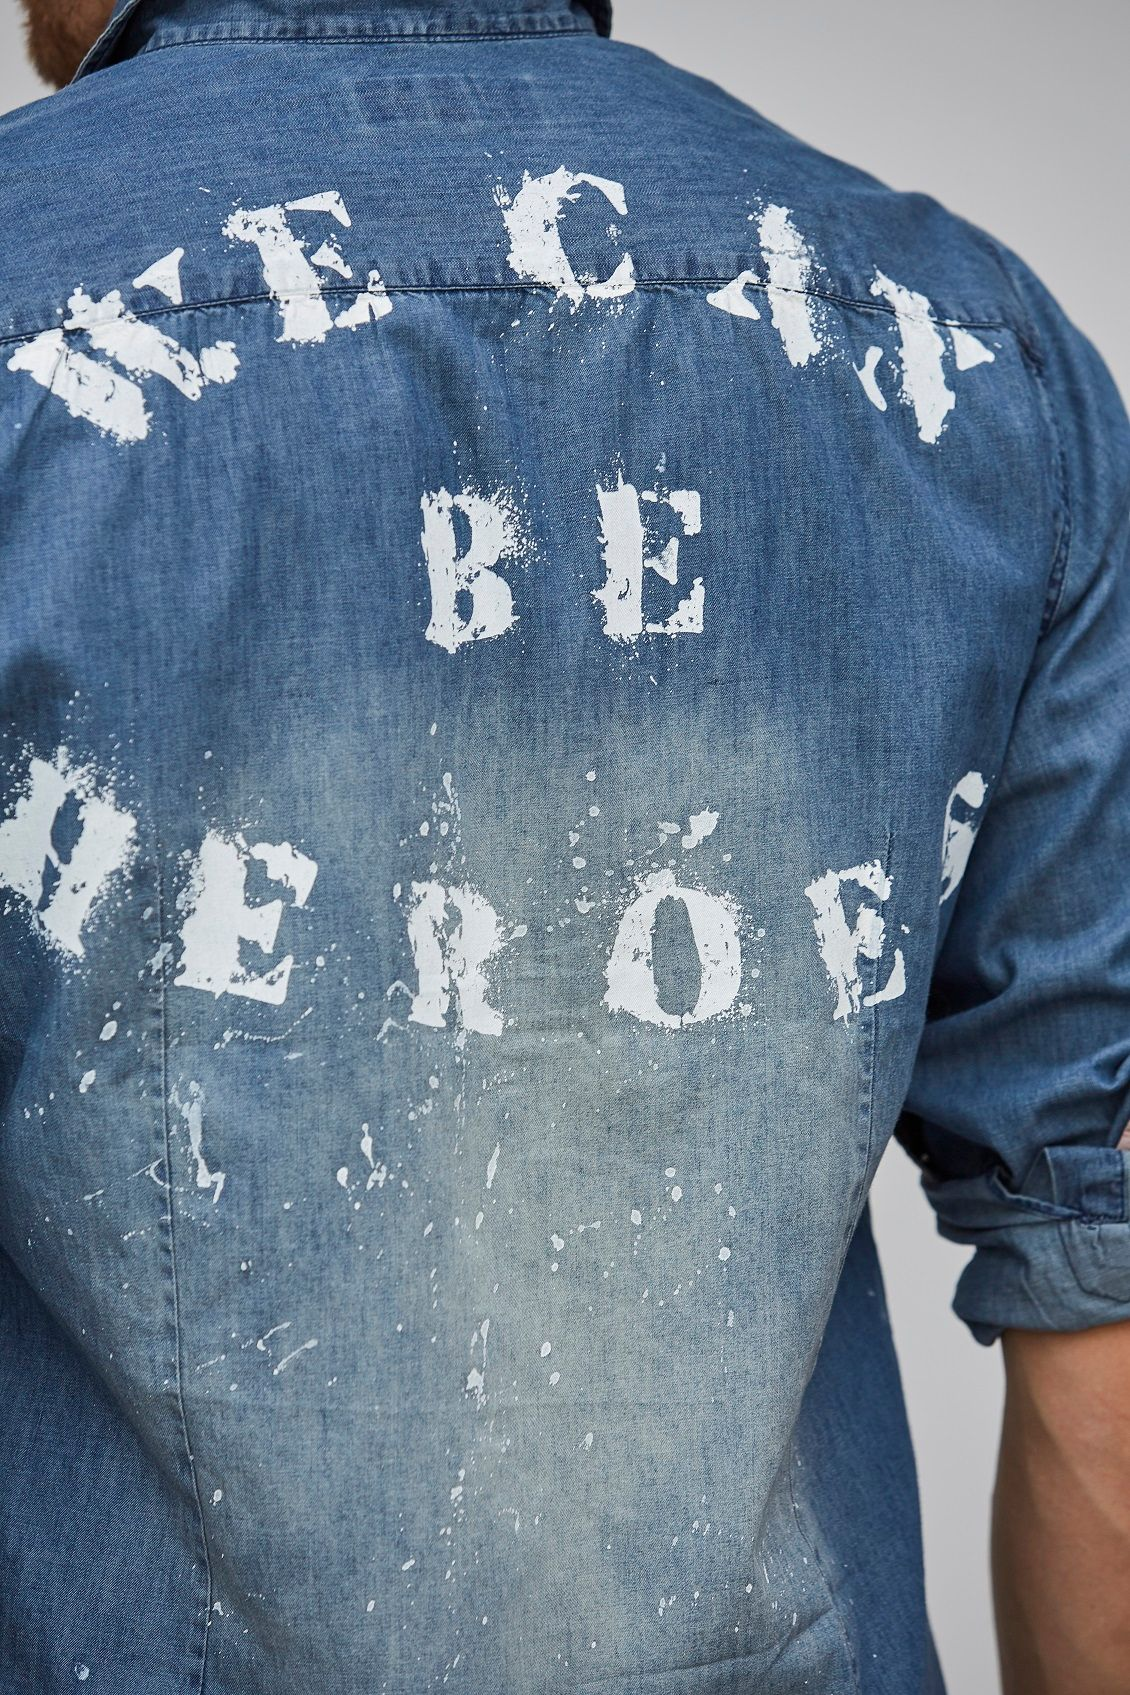 CAMISA FUN JEANS WE CAN BE HEROES Azul SPIRITO SANTO